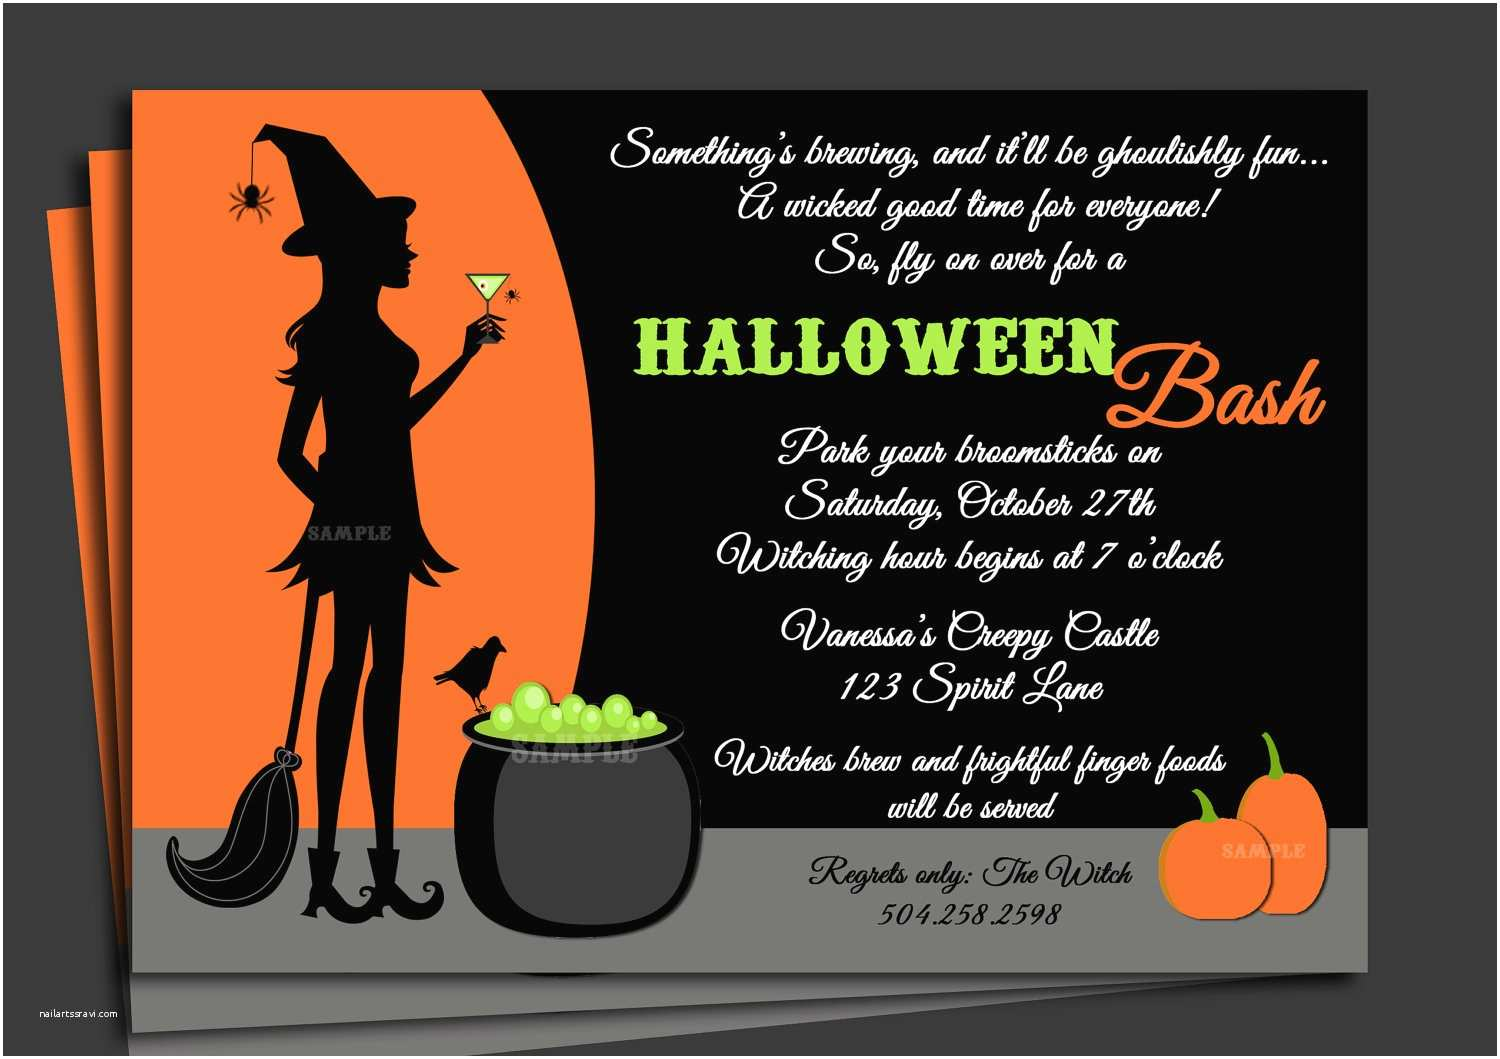 Halloween Party Invite Wording Halloween Party Invitation Poem Mickey Mouse Invitations